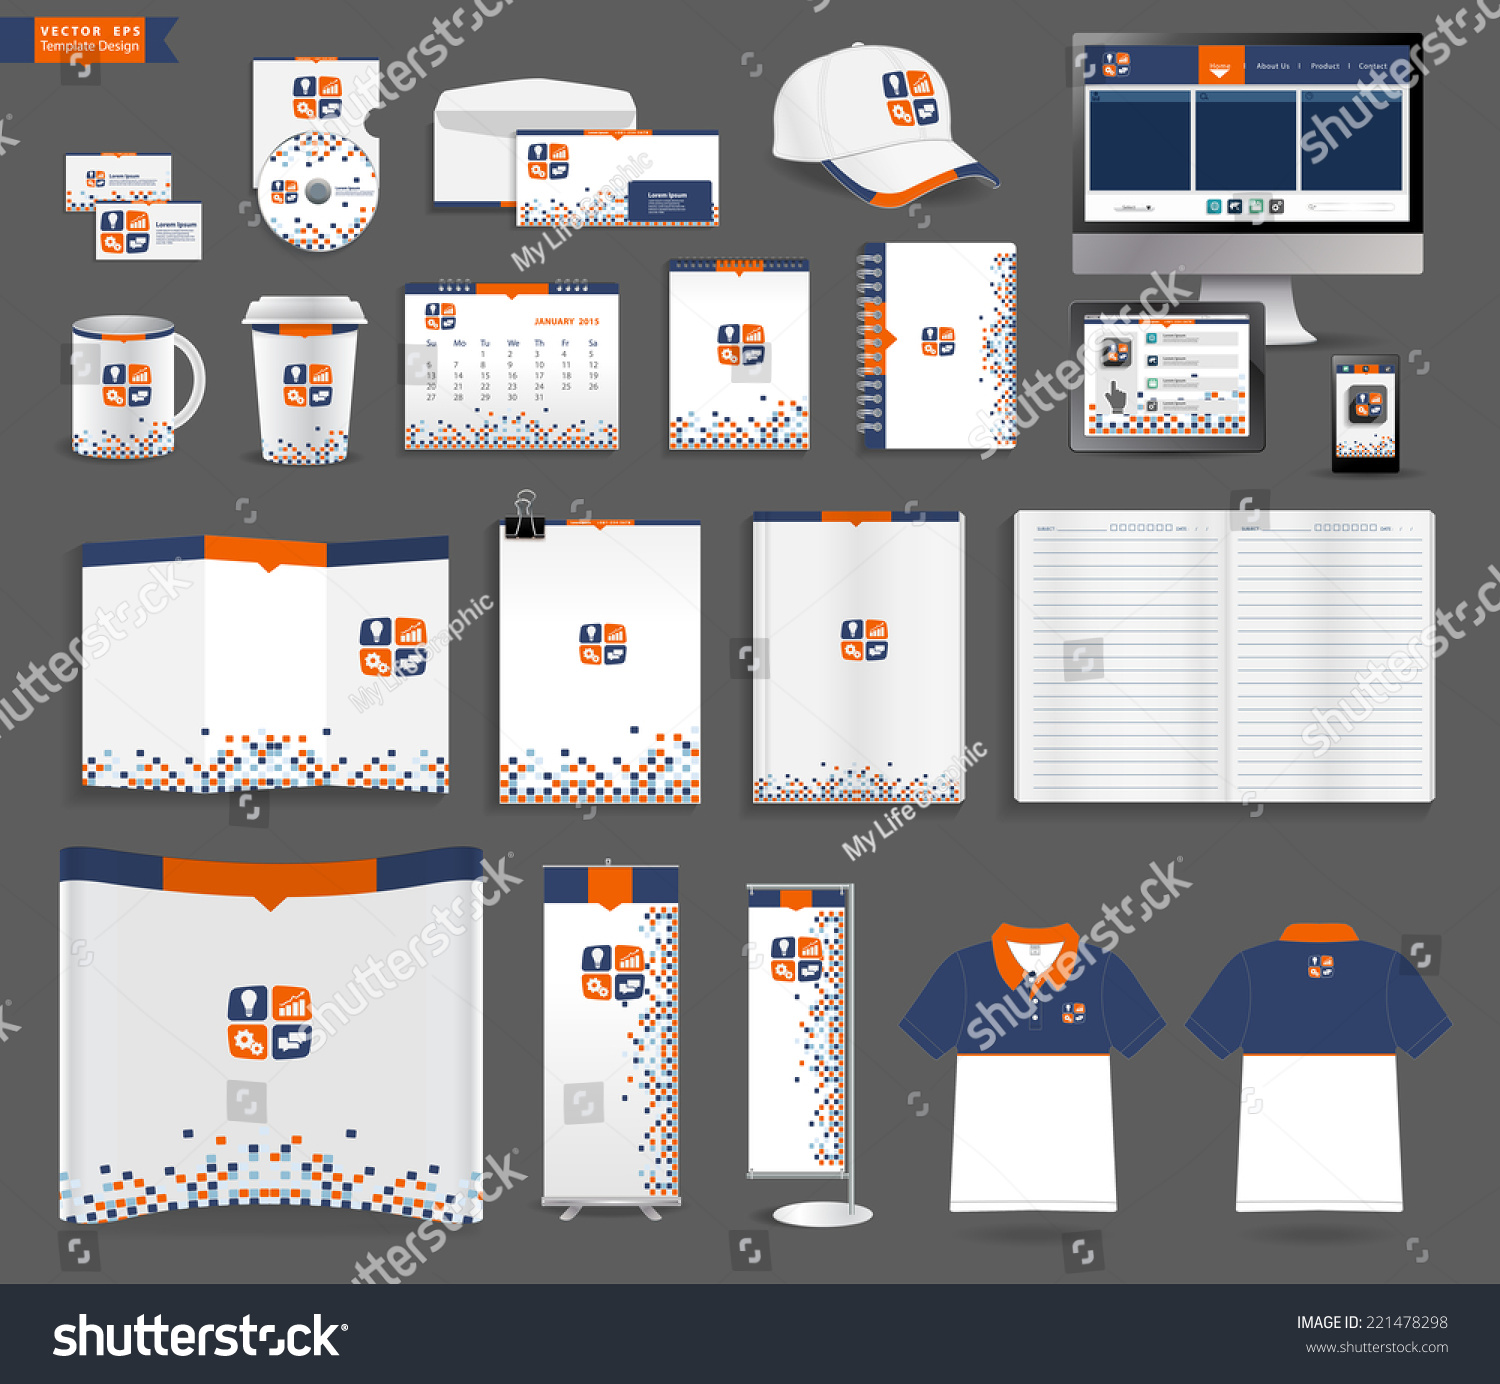 Shirt design envelope - Corporate Identity Templates With Blank Name Card Envelope Mugs Mobile Phone